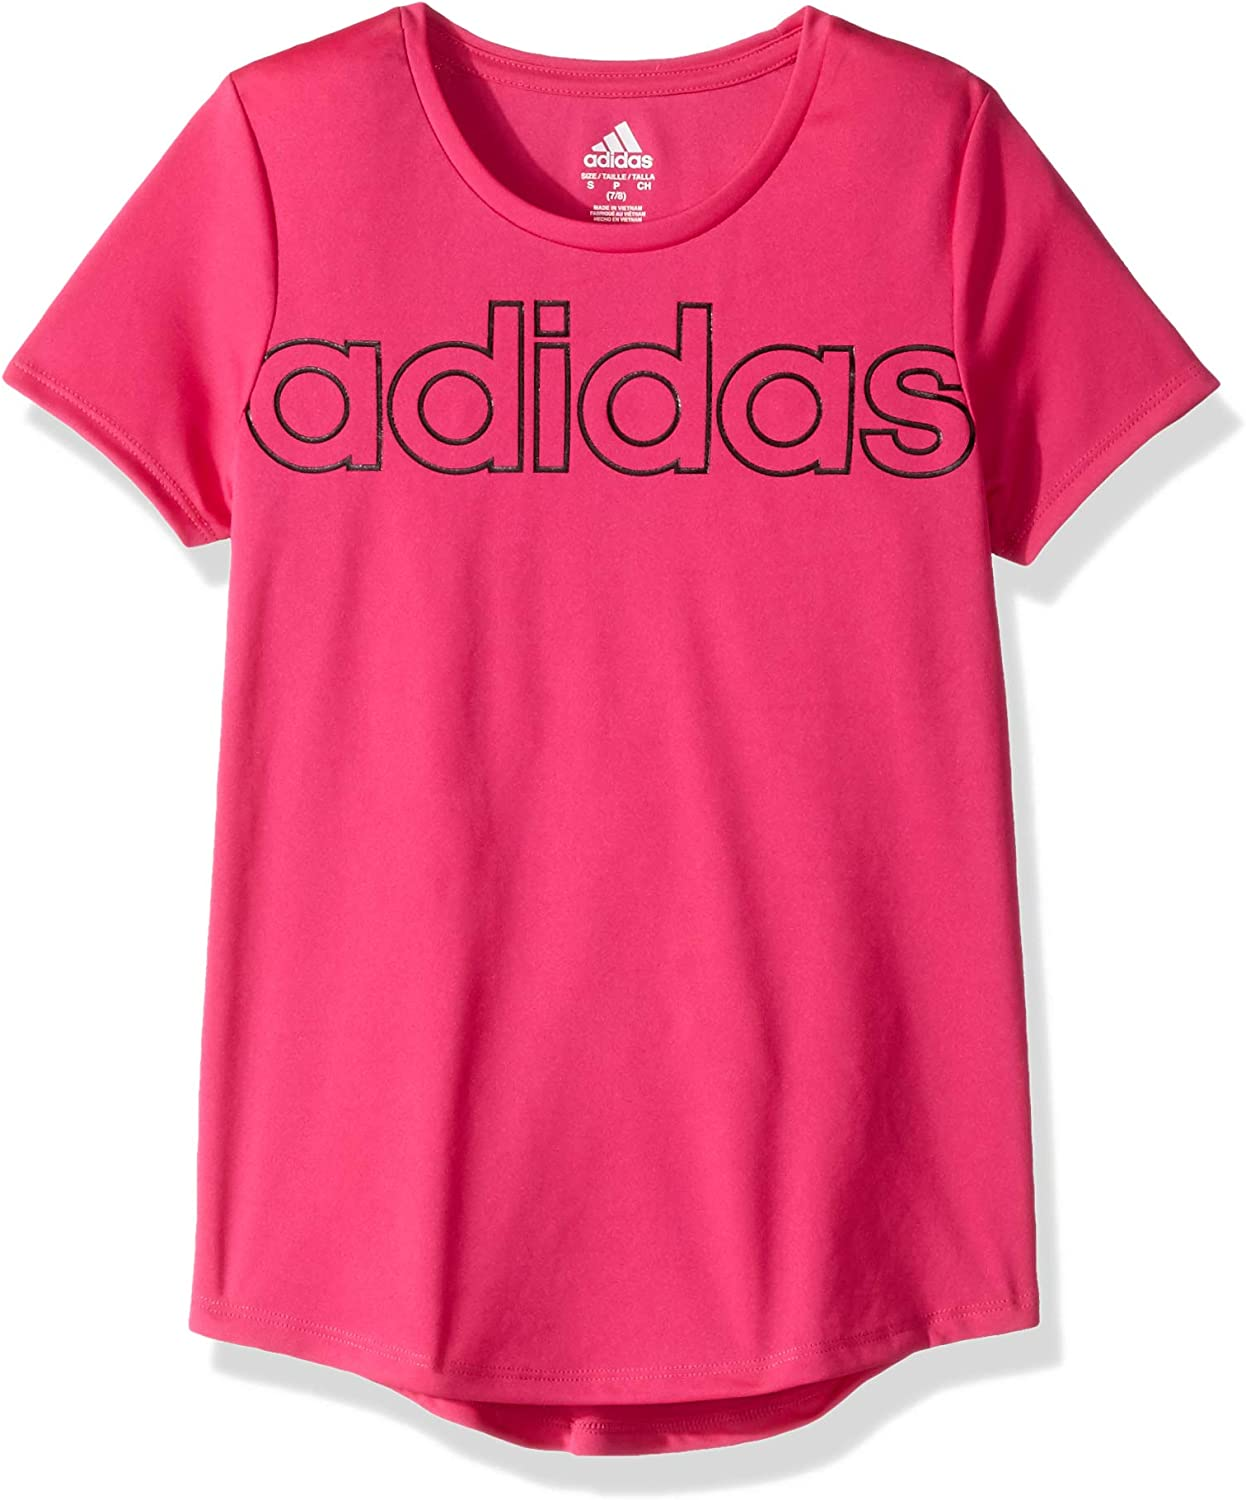 adidas Girls Scoop Neck Tee